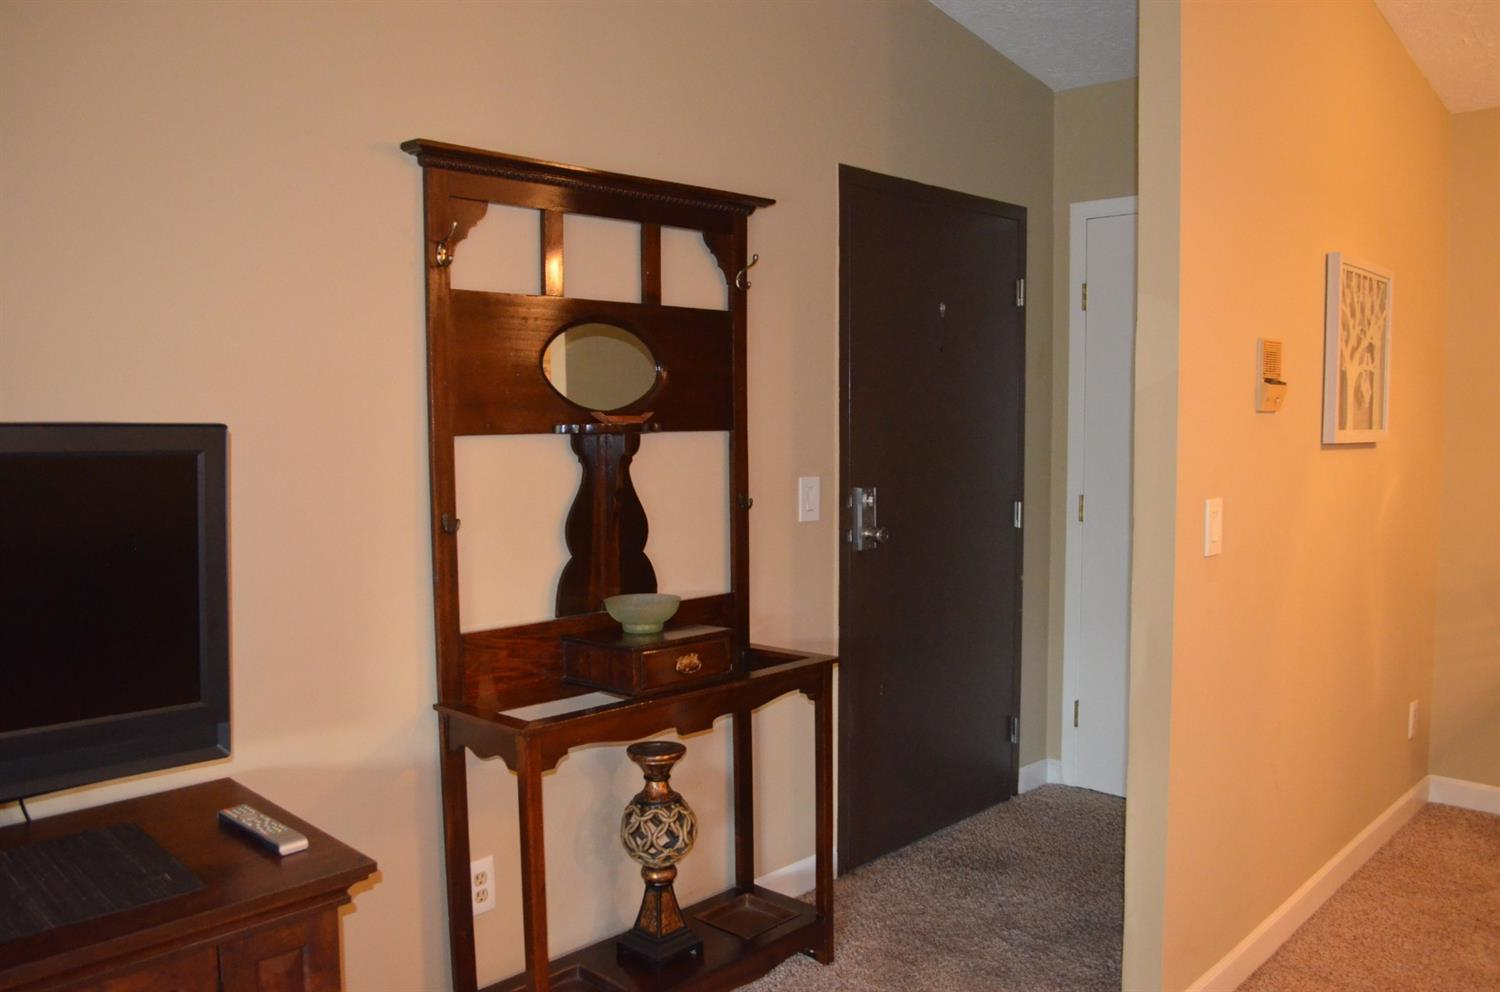 Photo 2 for 7240 Creekview Dr #12 Colerain Twp.West, OH 45247